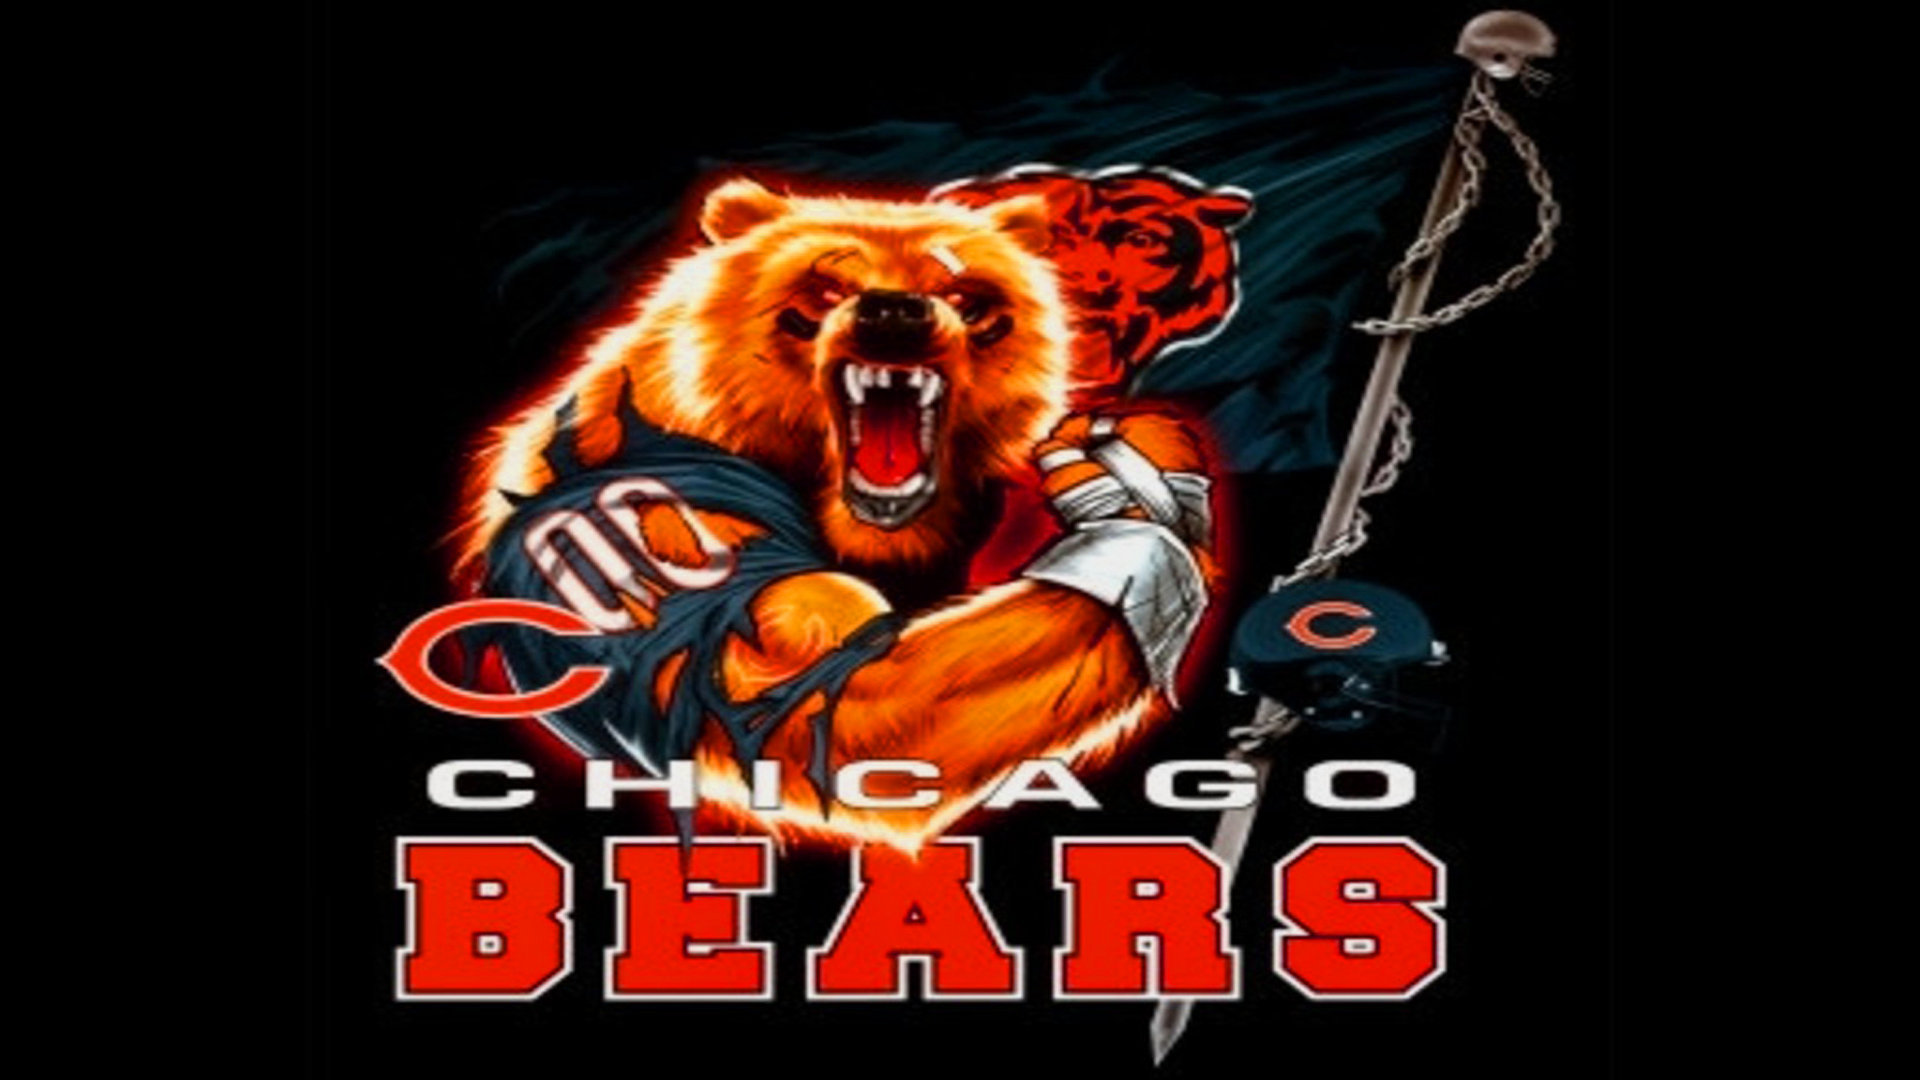 CHICAGO BEARS nfl football g wallpaper 1920x1080 1920x1080